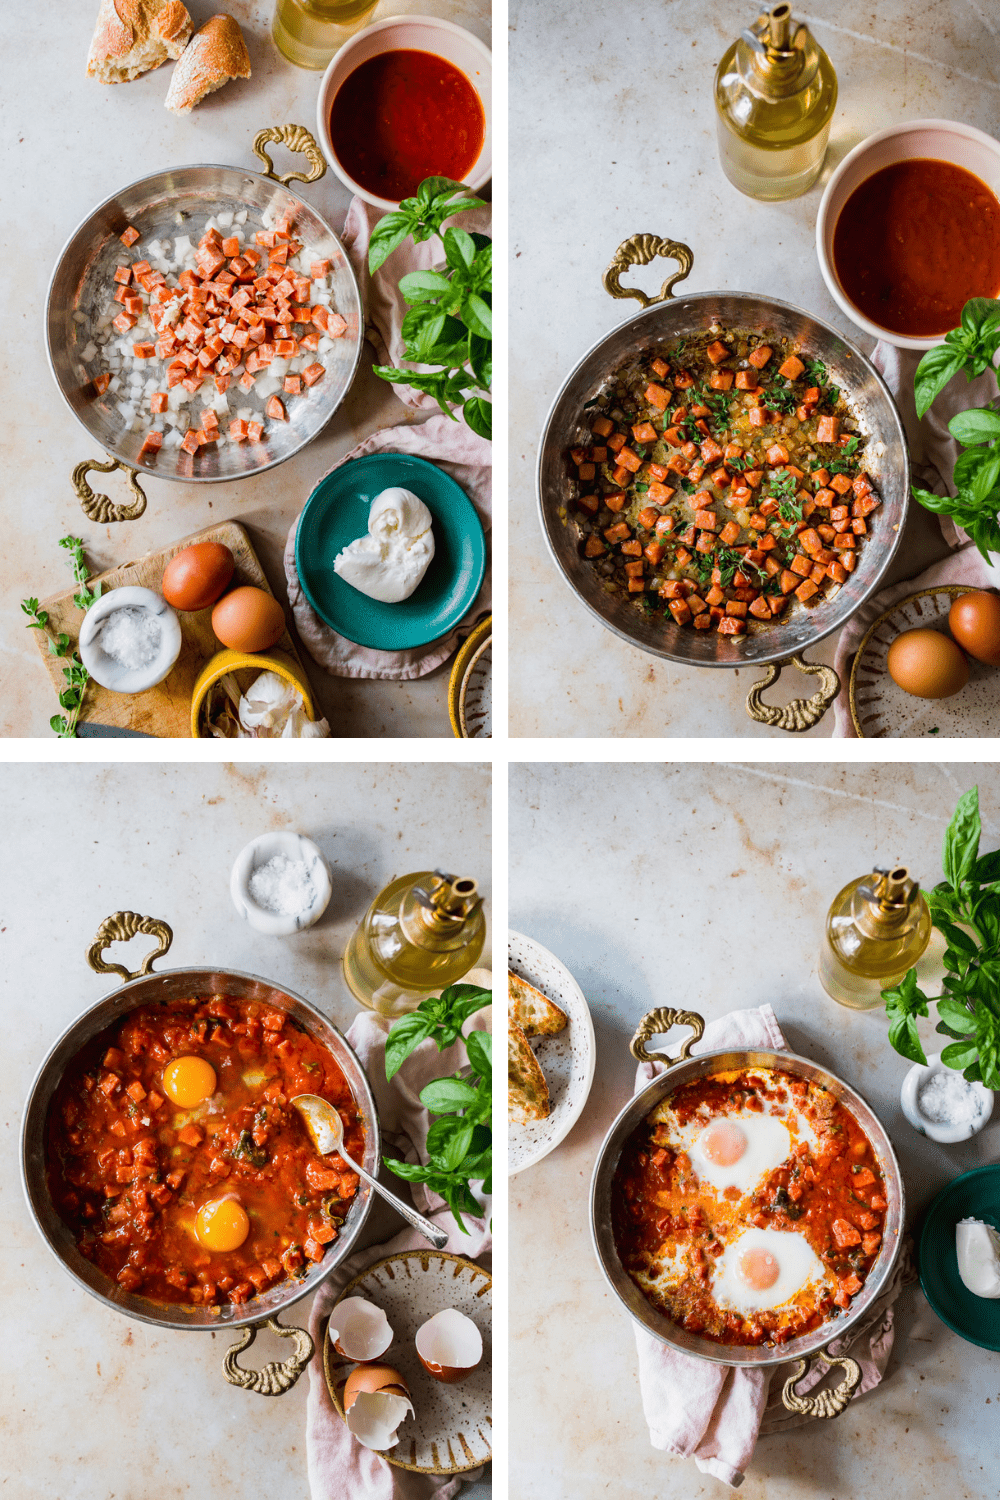 4 images cooking the poached eggs with sausage and tomato sauce.